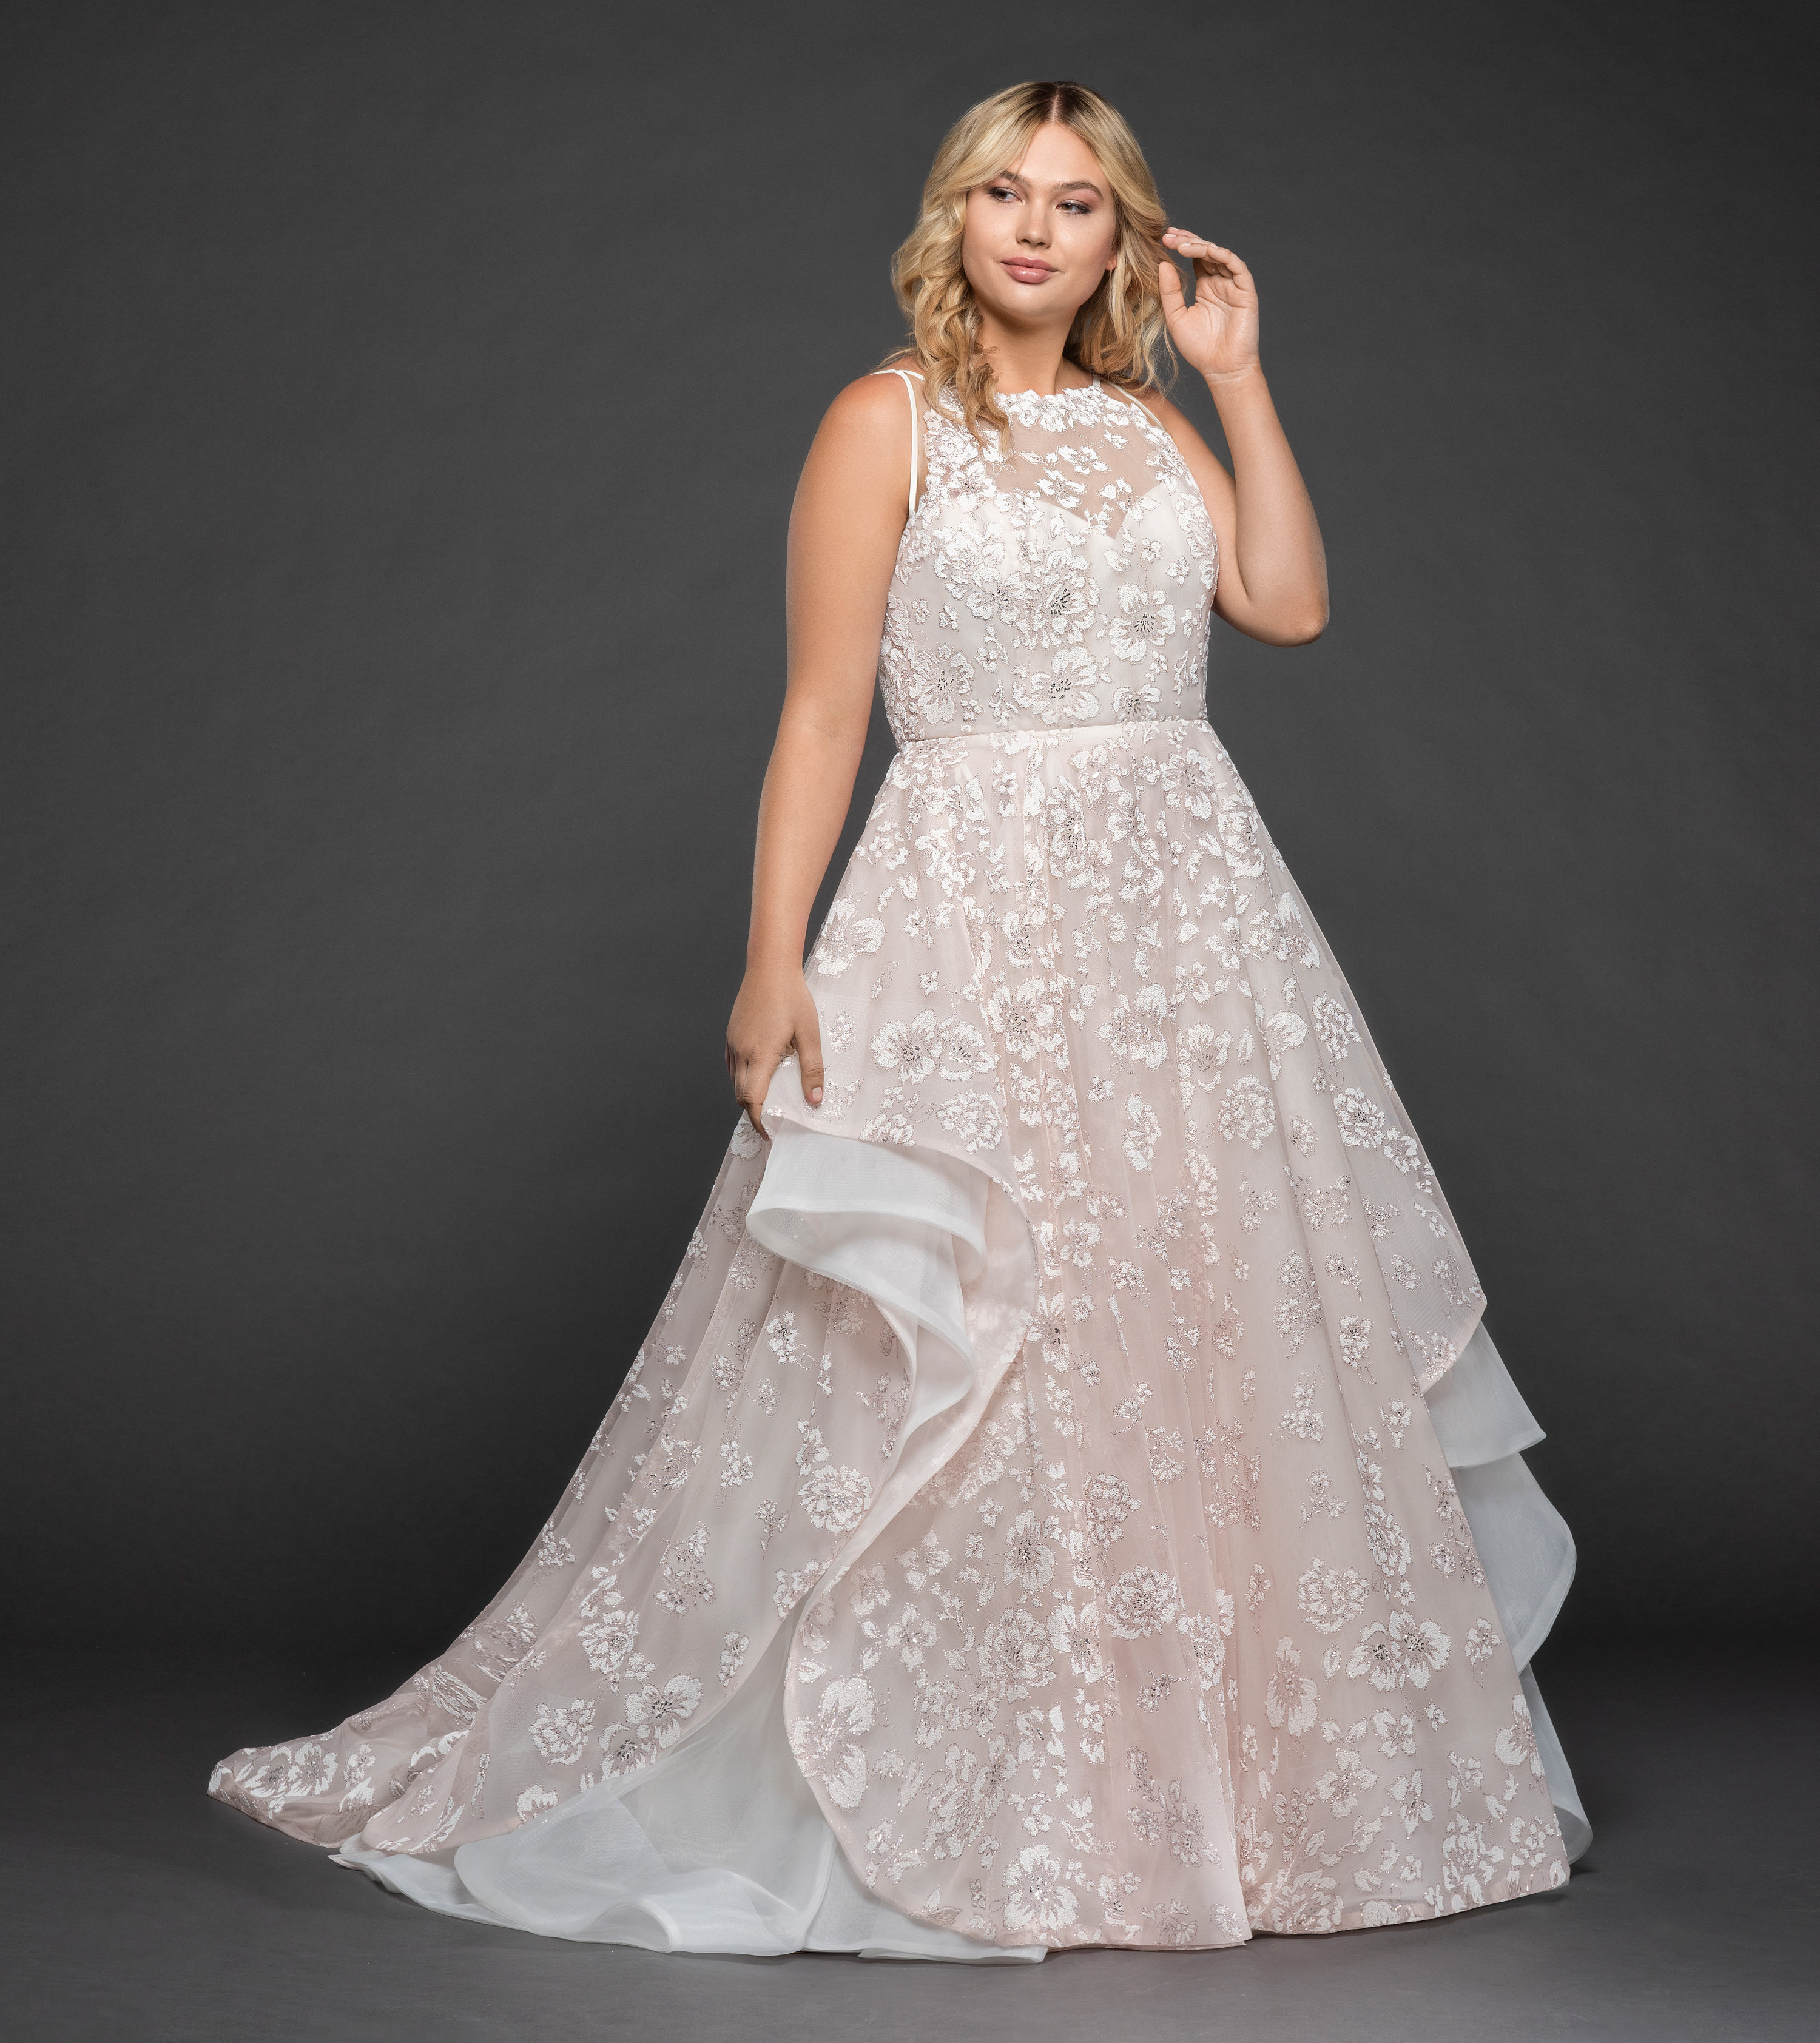 Bridal Gowns And Wedding Dresses By Jlm Couture Style 6755 Reagan